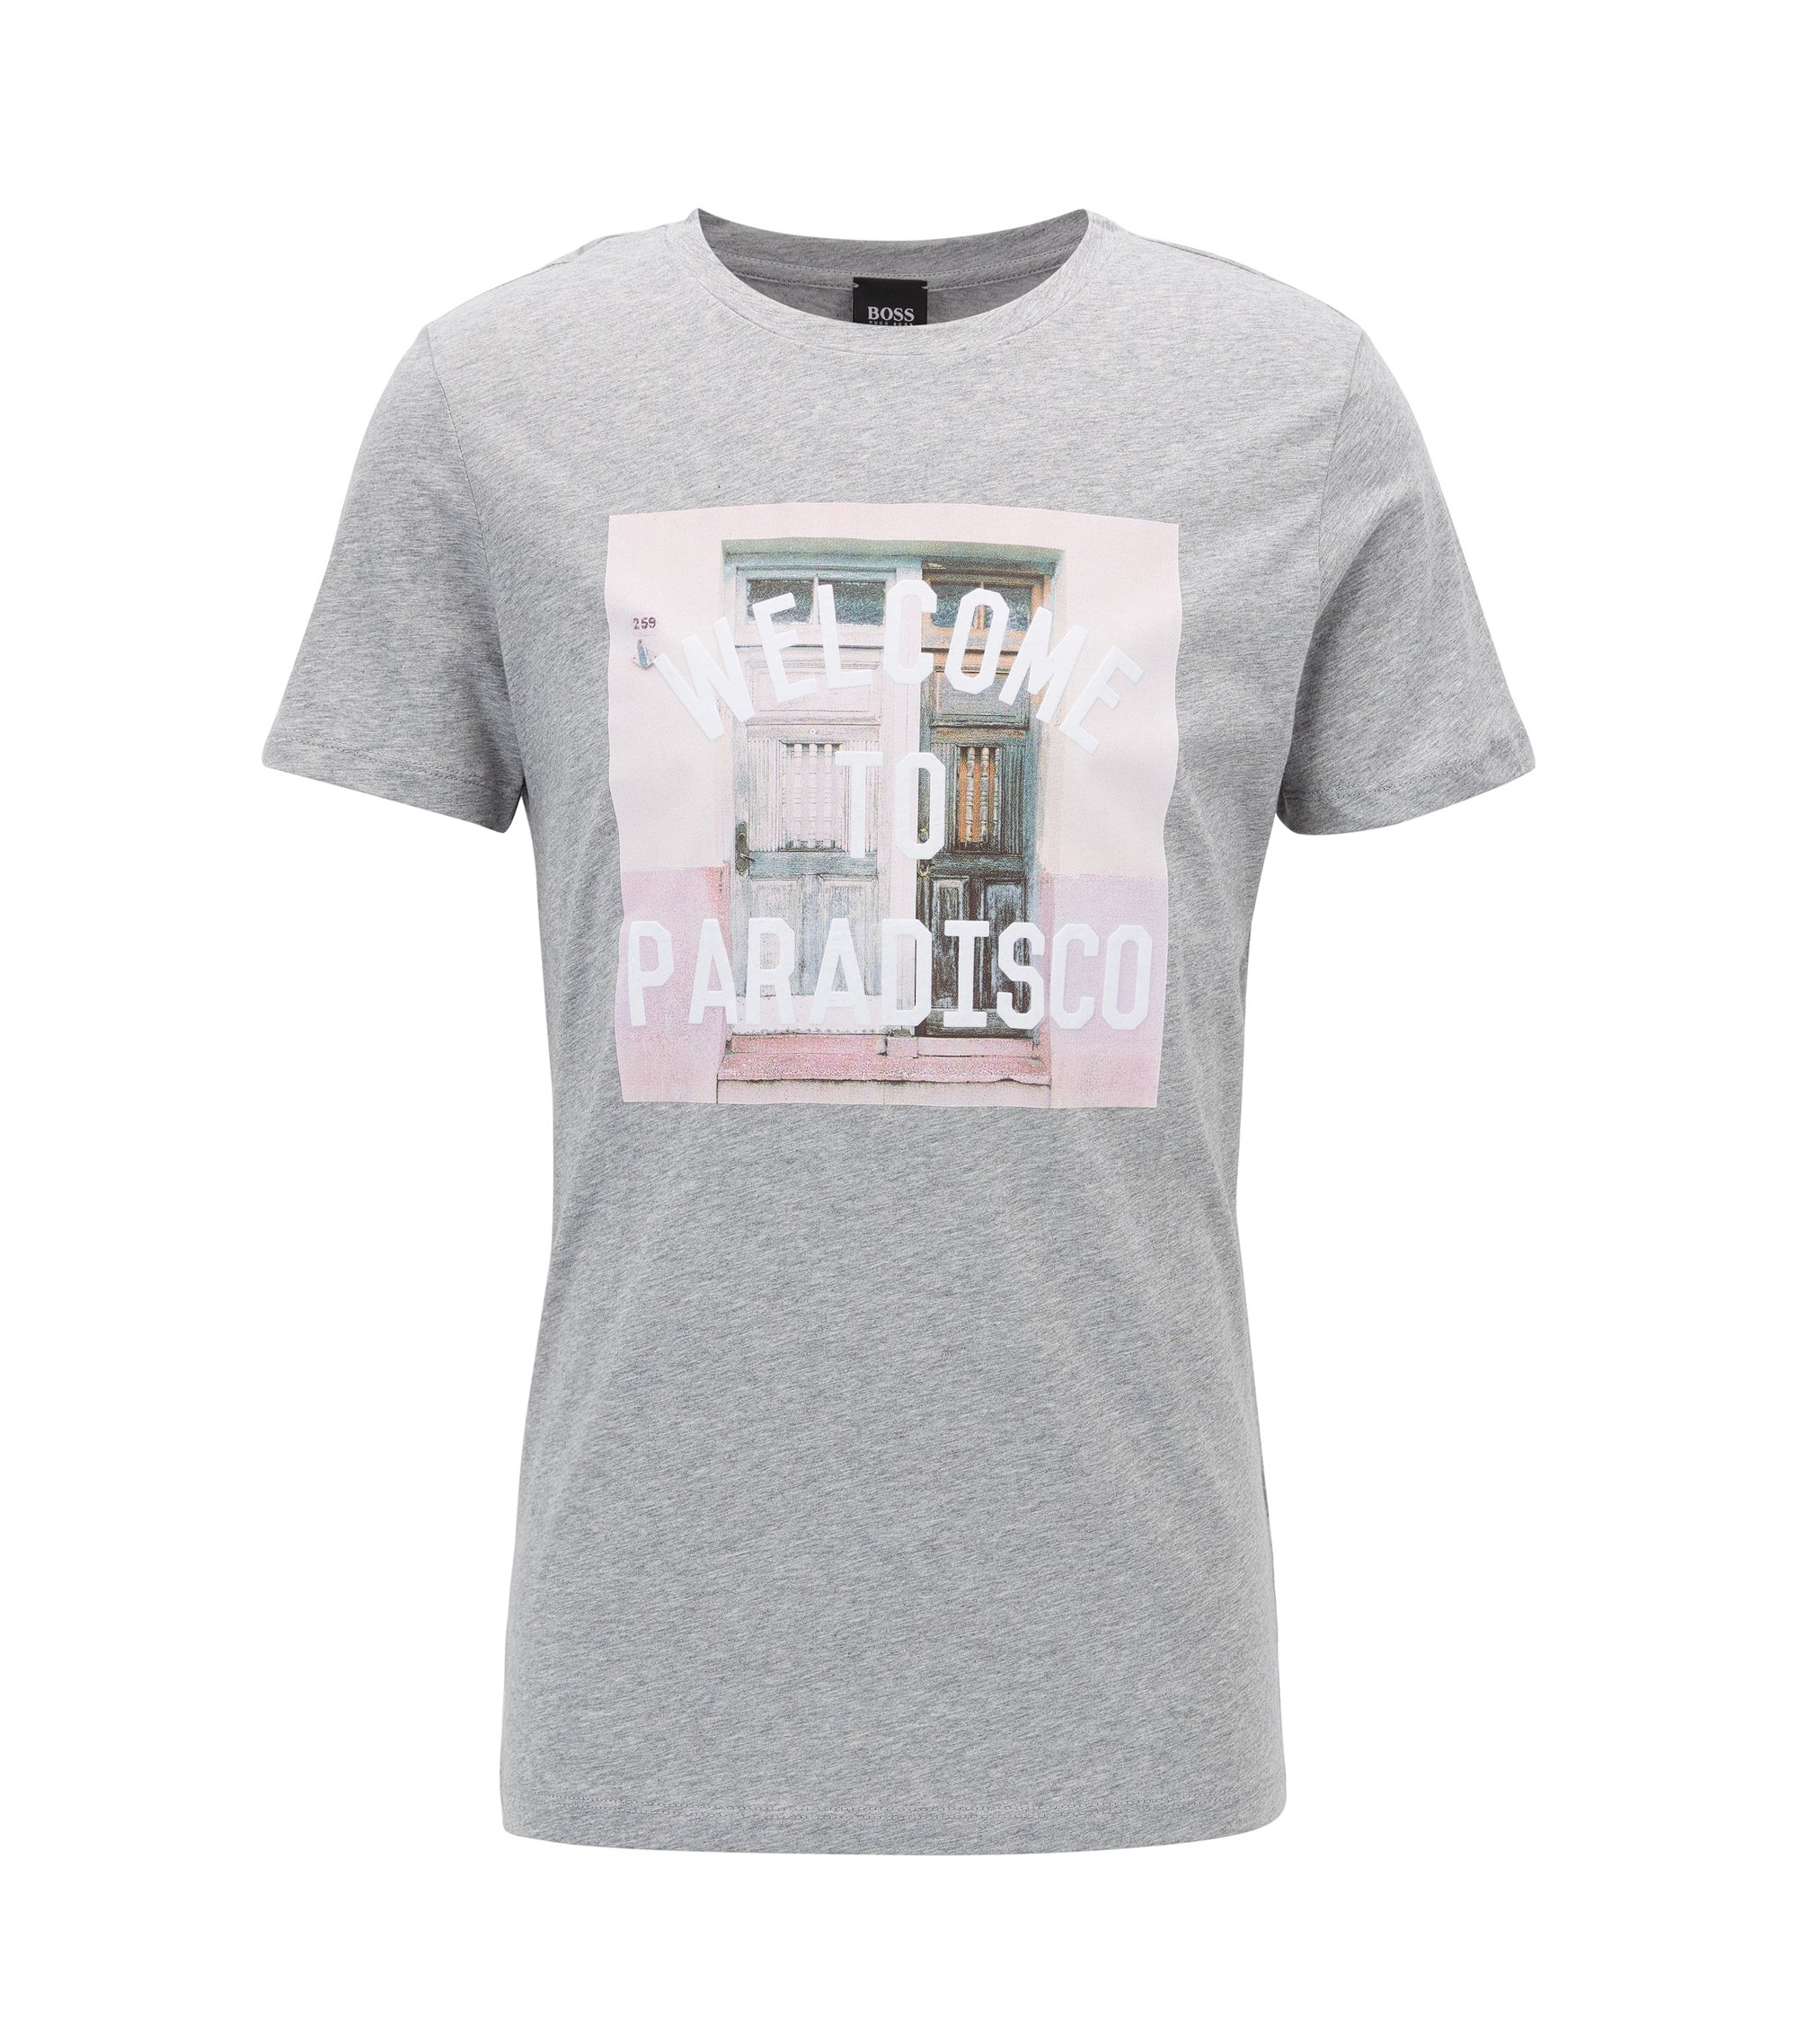 T-shirt graphique Relaxed Fit en jersey simple de coton, Gris